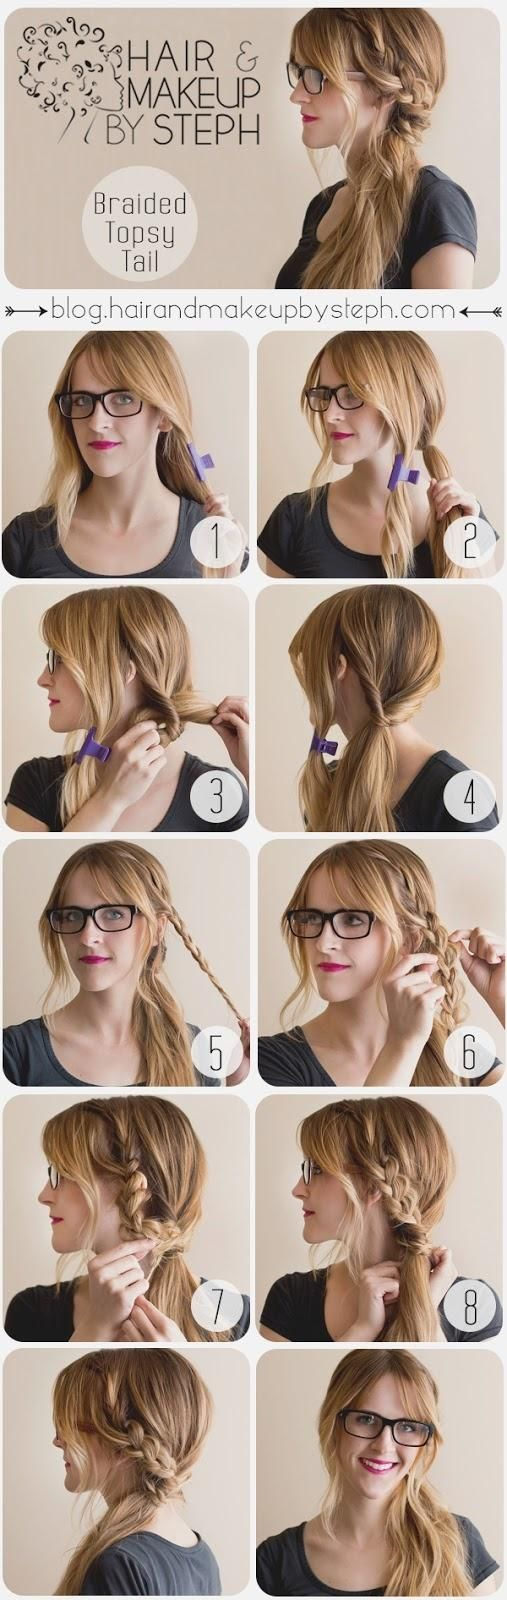 best fashon images on pinterest beauty tips diy clothes and